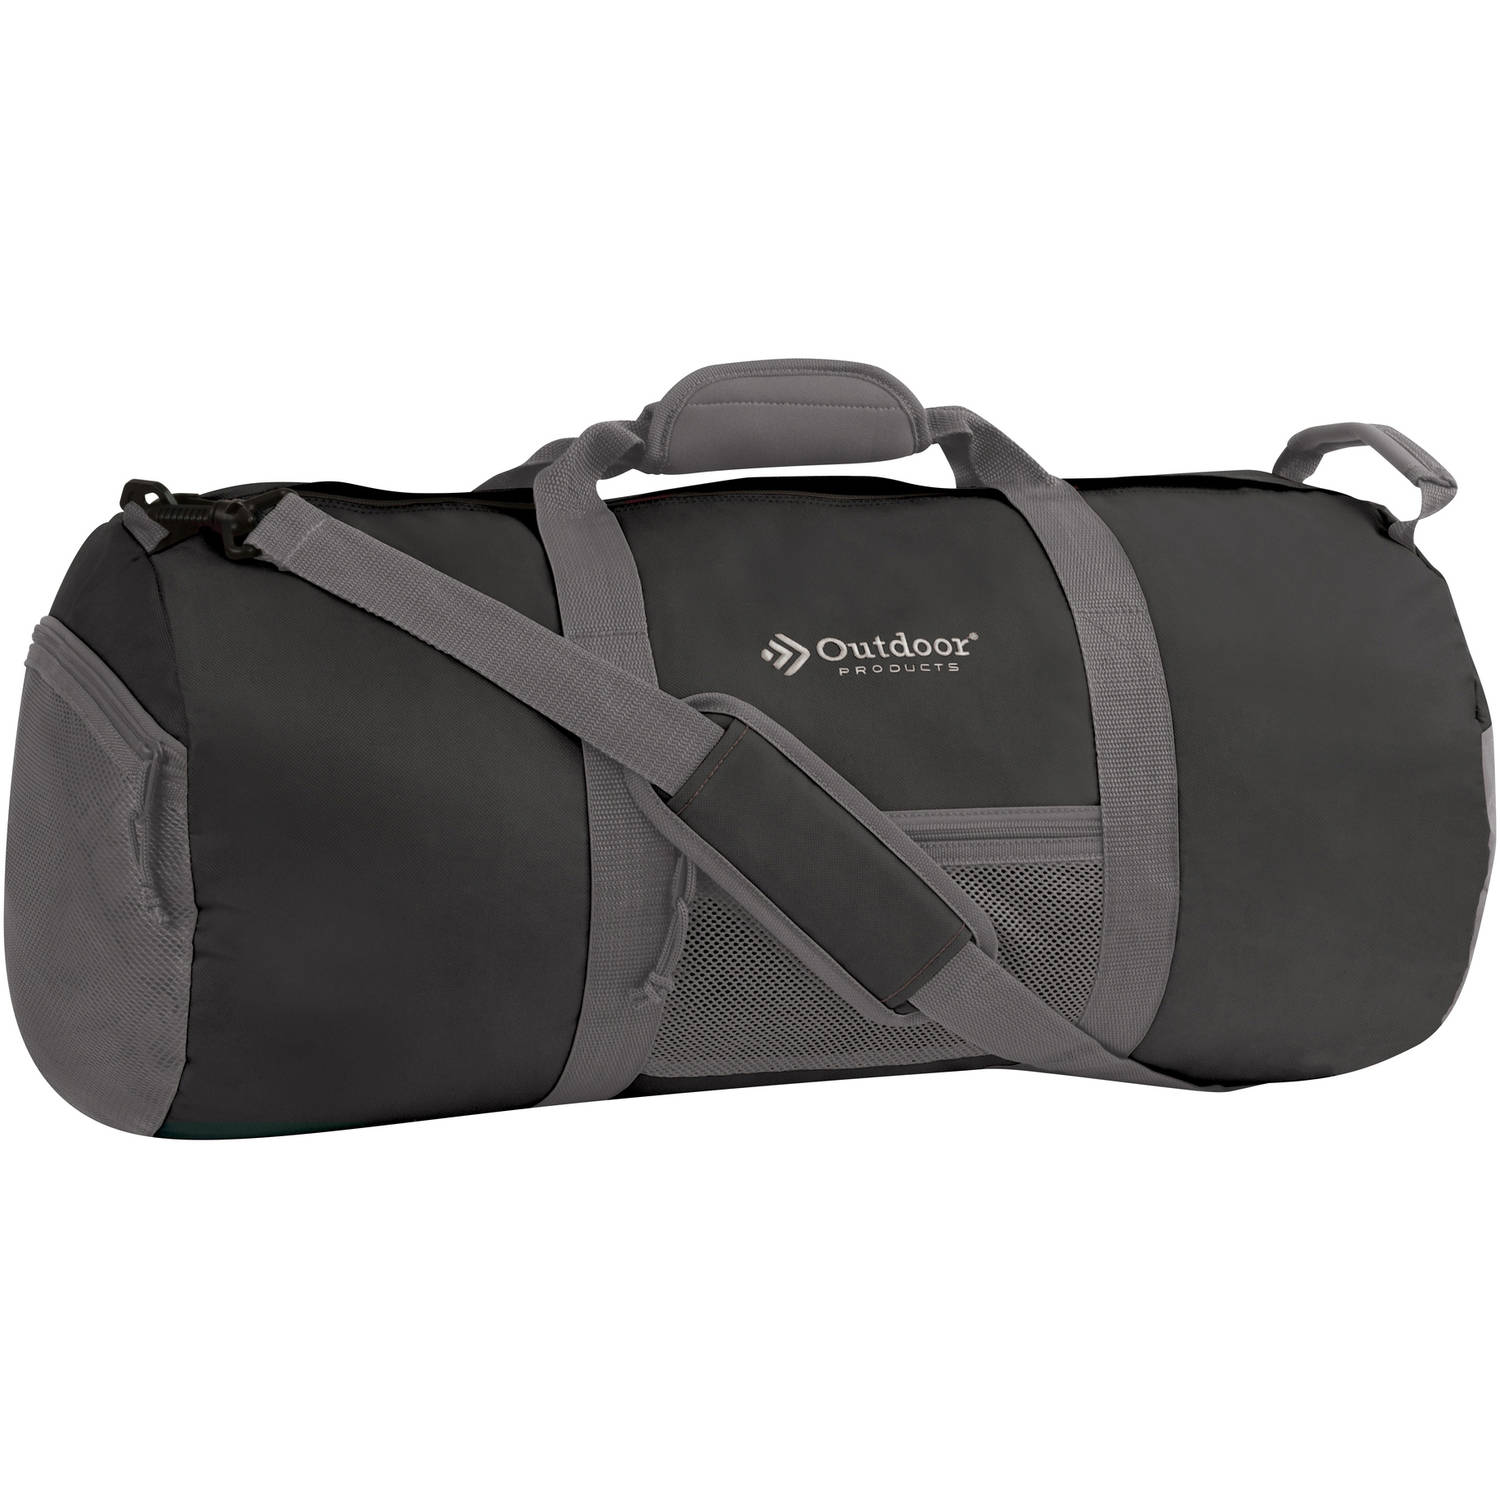 Outdoor® Products Large Travel Duffle with Bonus Travel Pouch, Black